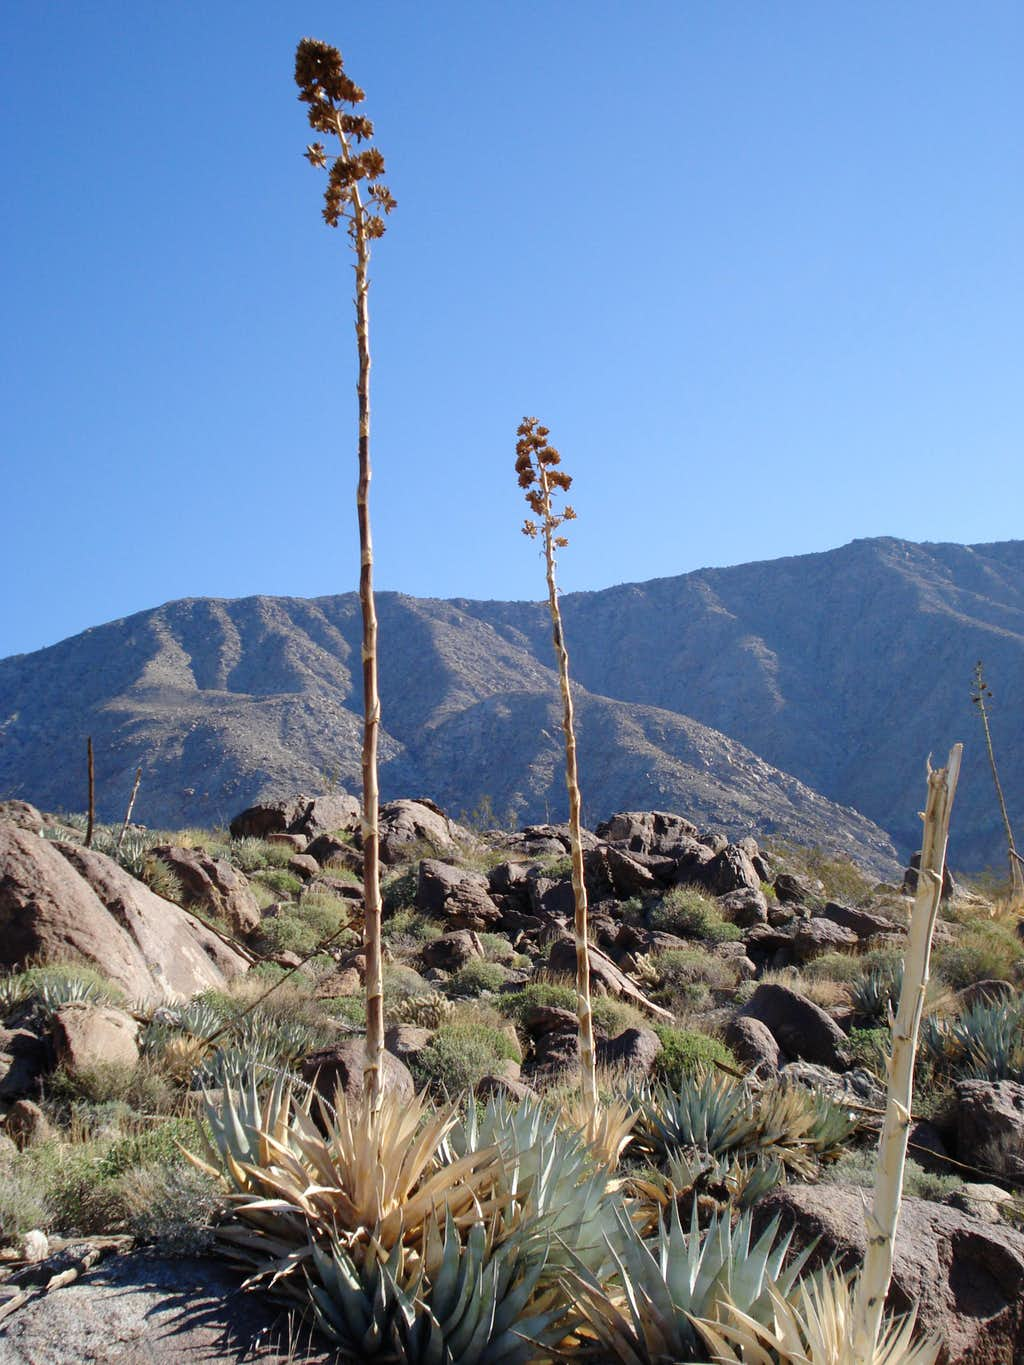 Agave found on the ascent to Rabbit Peak